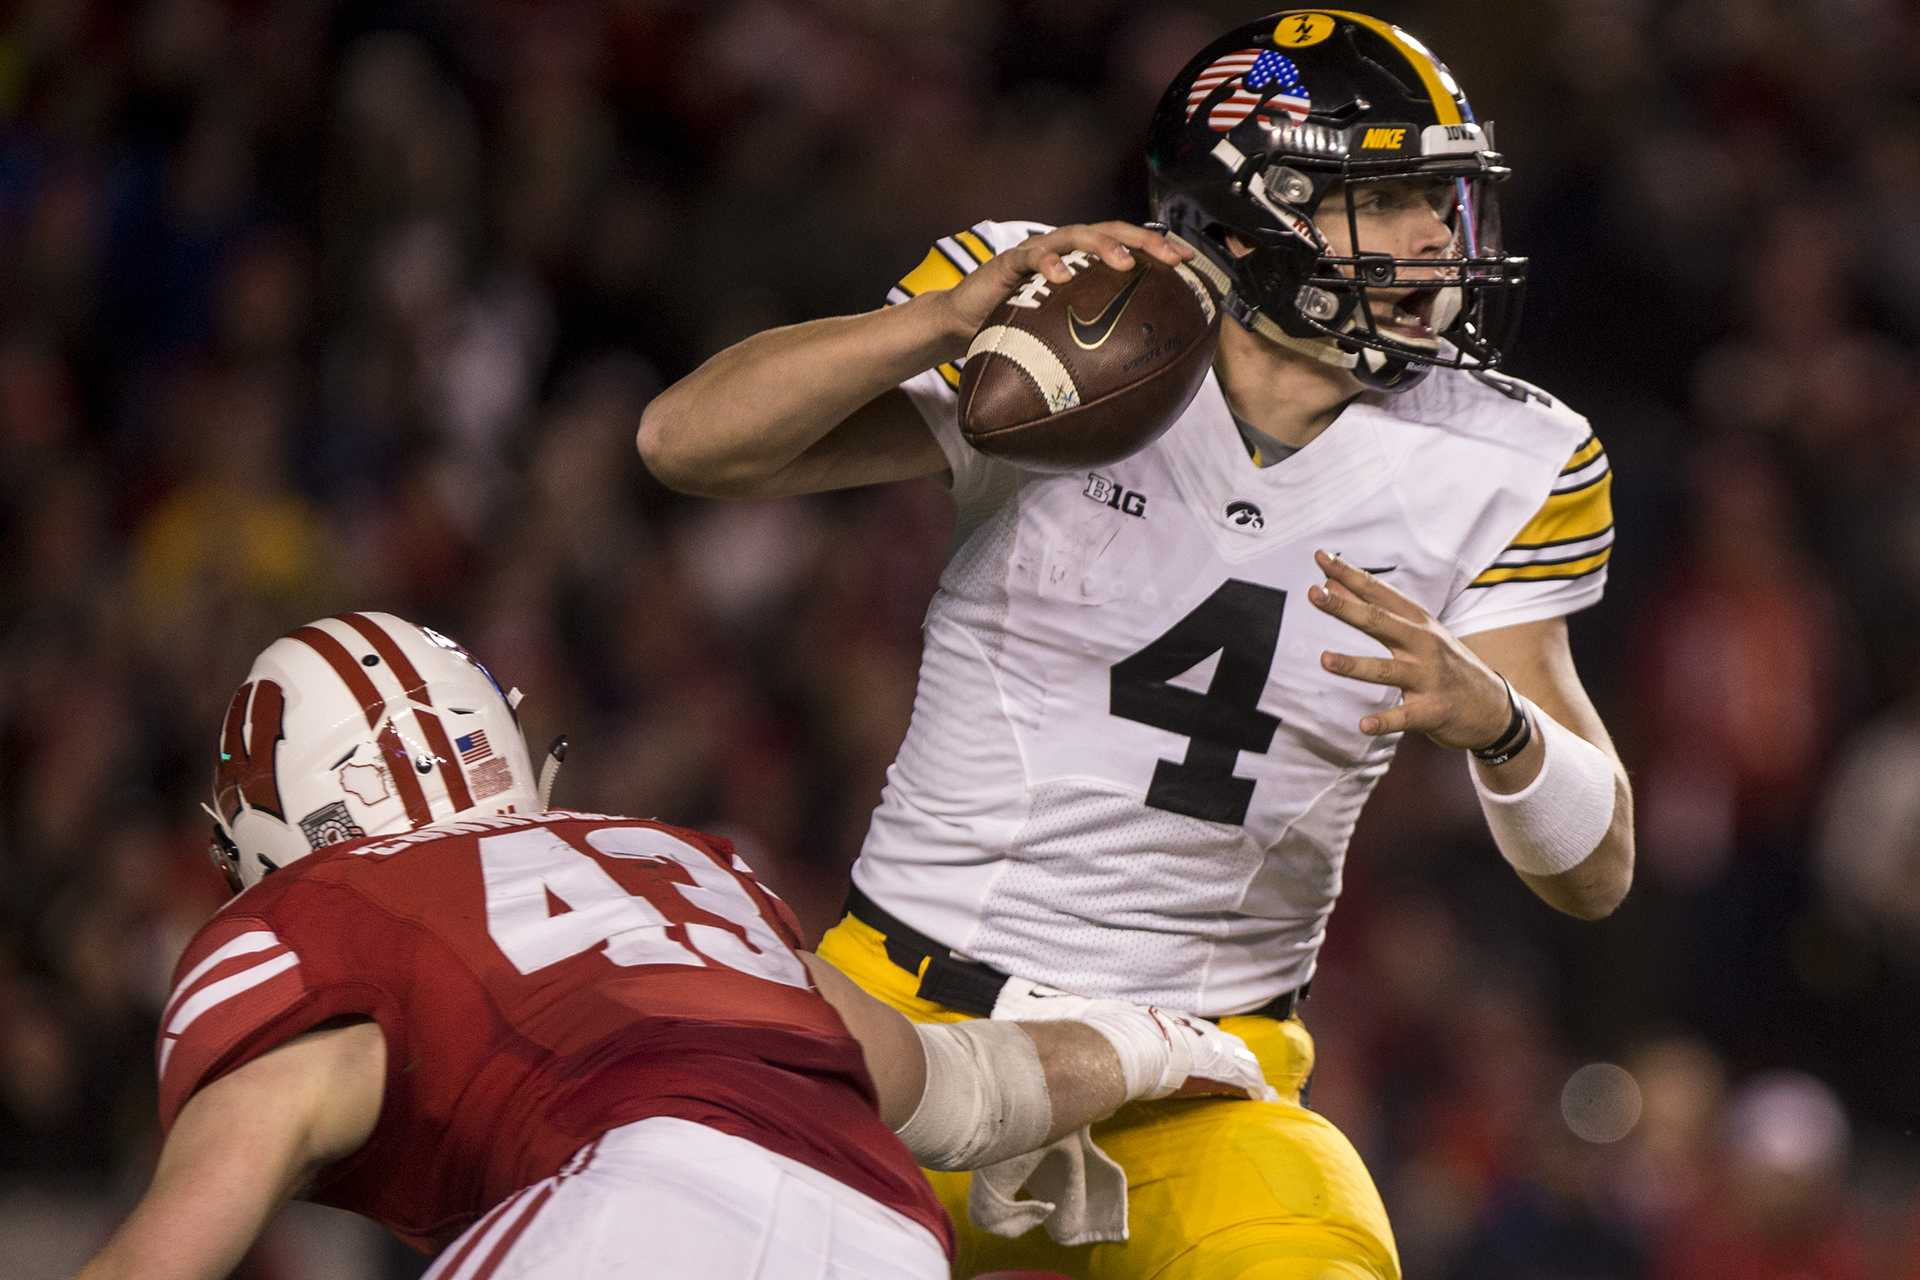 Iowa quarterback Nate Stanley attempts to avoid the blitz during Iowa's game against Wisconsin at Camp Randall Stadium on Saturday, Nov. 11, 2017. The badgers defeated the Hawkeyes 38-14. (Nick Rohlman/The Daily Iowan)